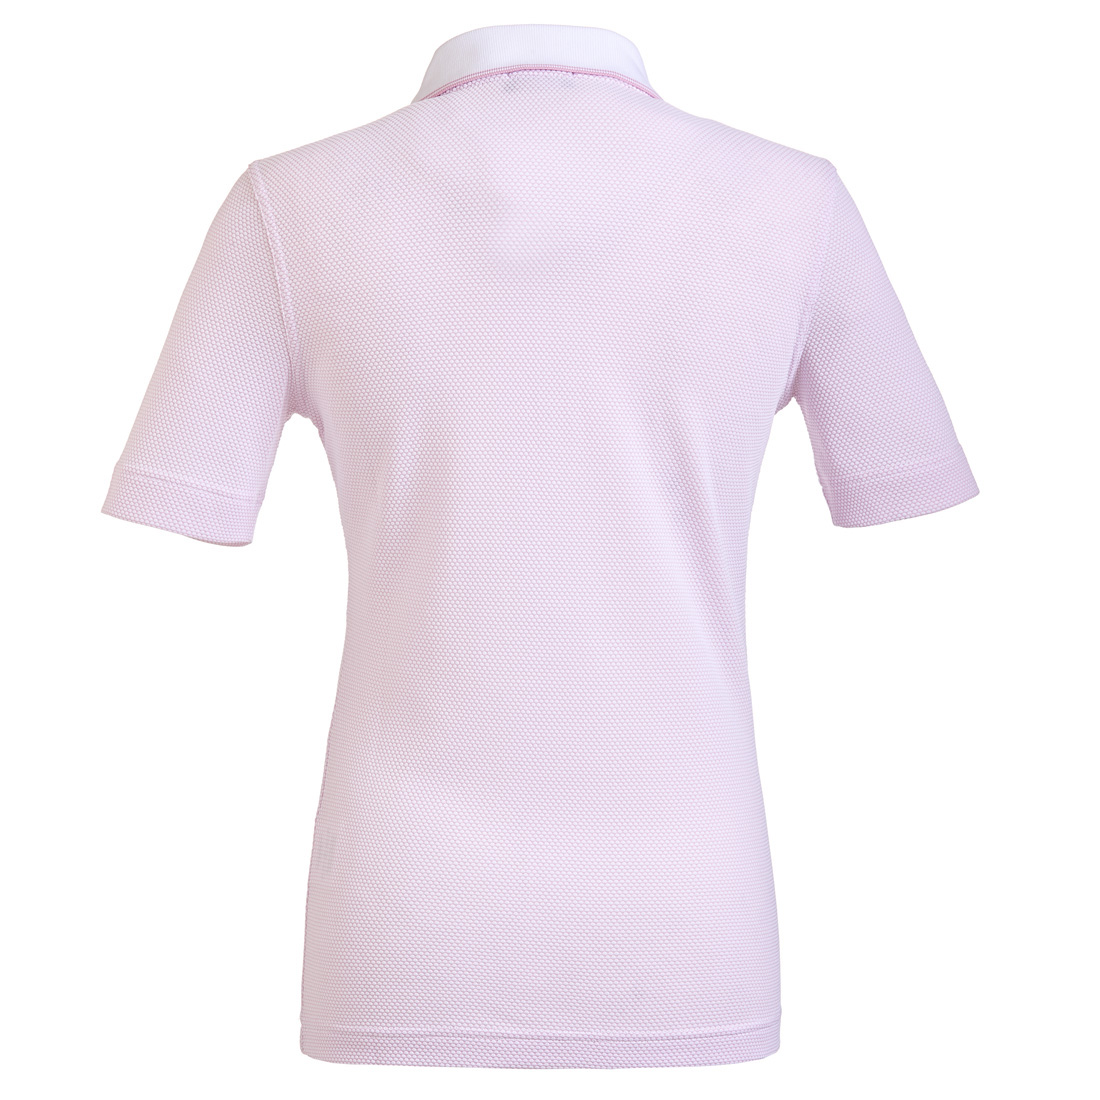 Damen Funktions-Golfpoloshirt in Regular Fit aus hochwertigem Bubble Jacquard